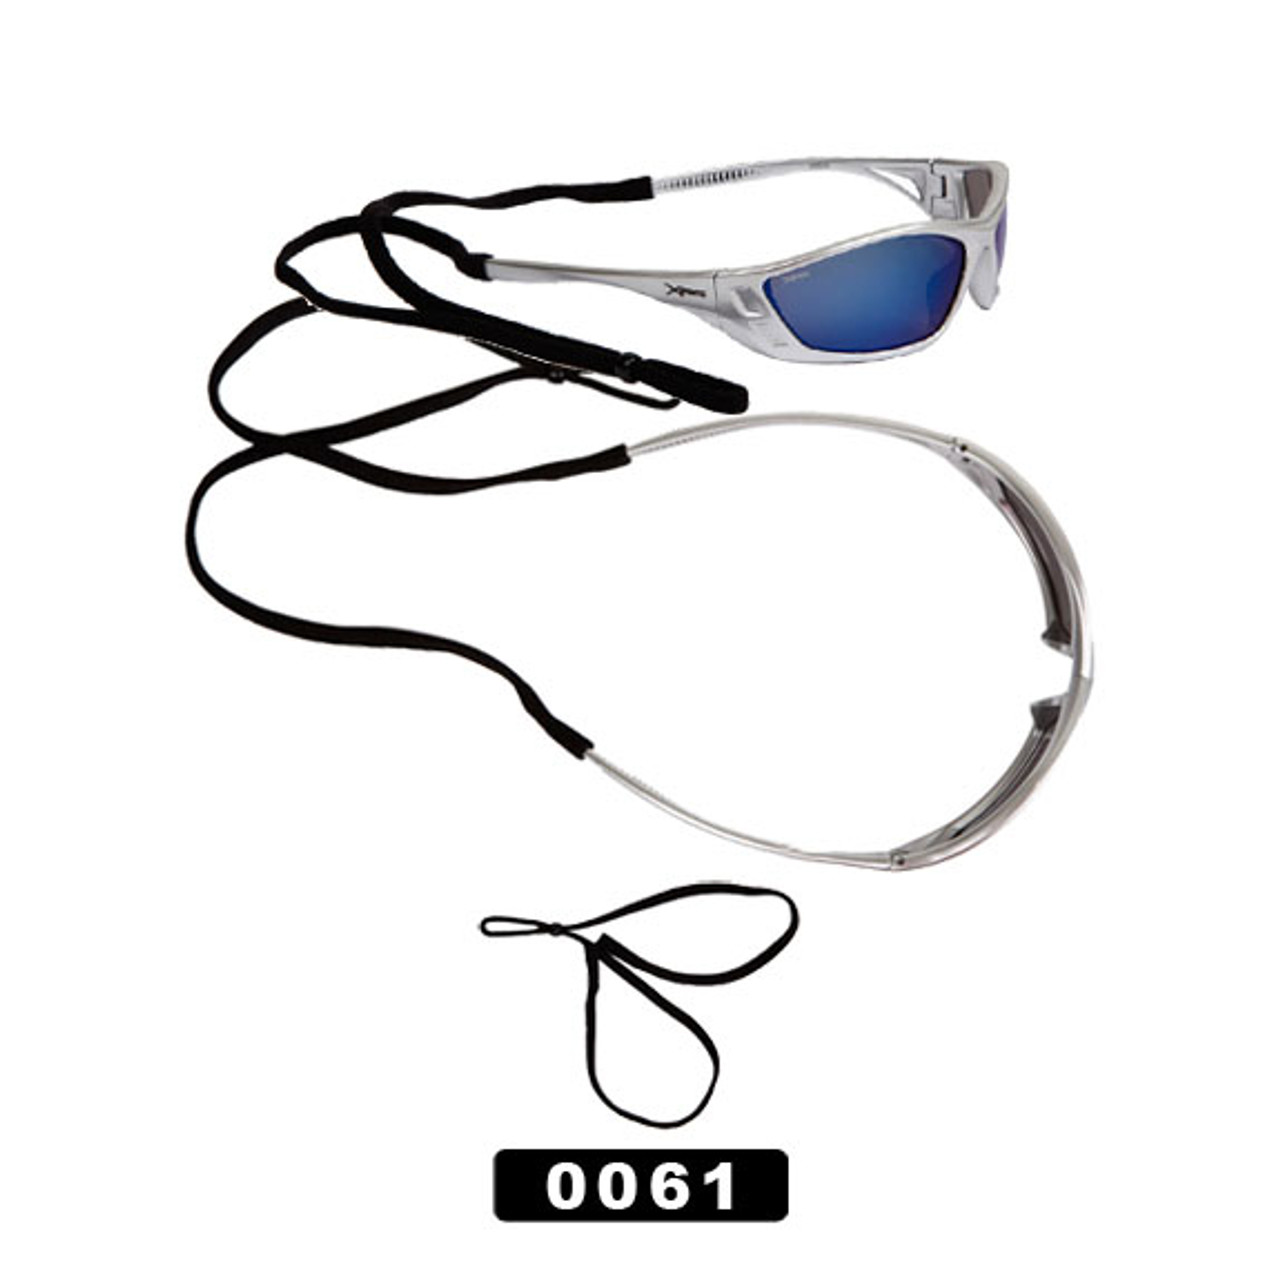 Adjustable Sunglass Cord | Strap